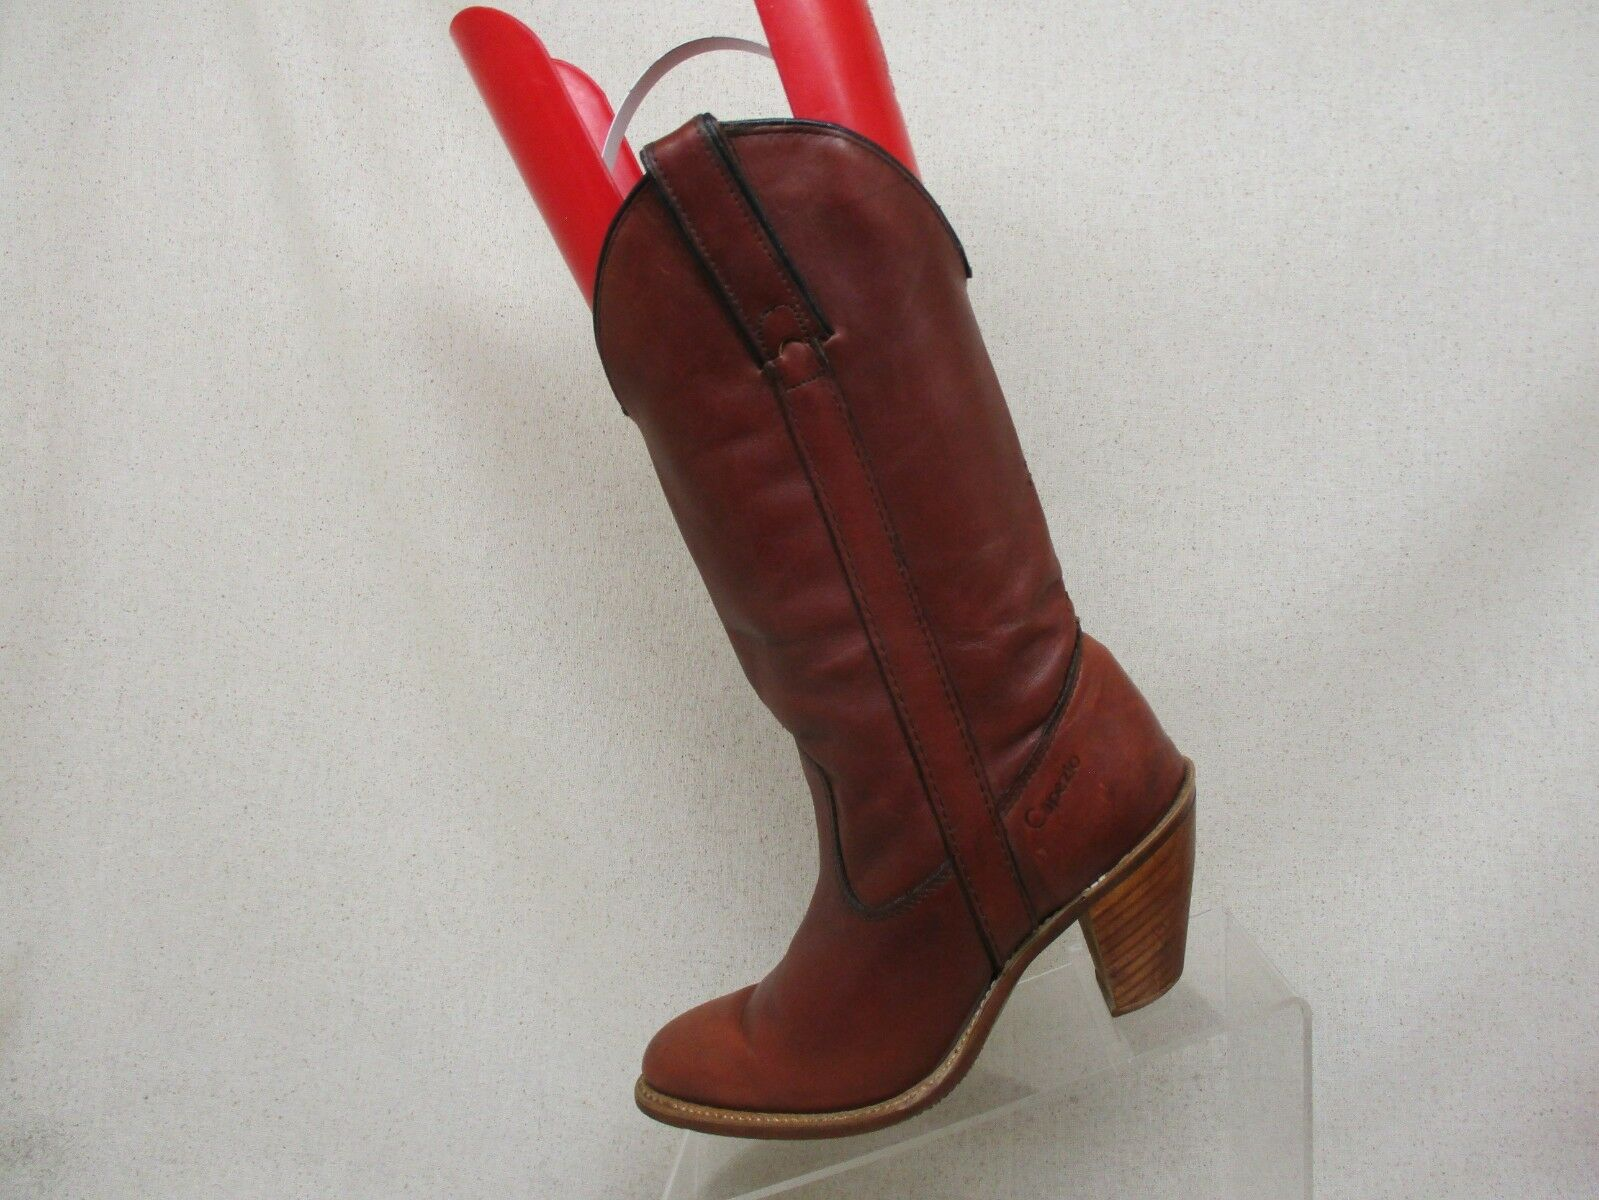 CAPEZIO Burgundy Leather High Heel Cowboy Boots Womens Size 5.5 M Style L703 USA